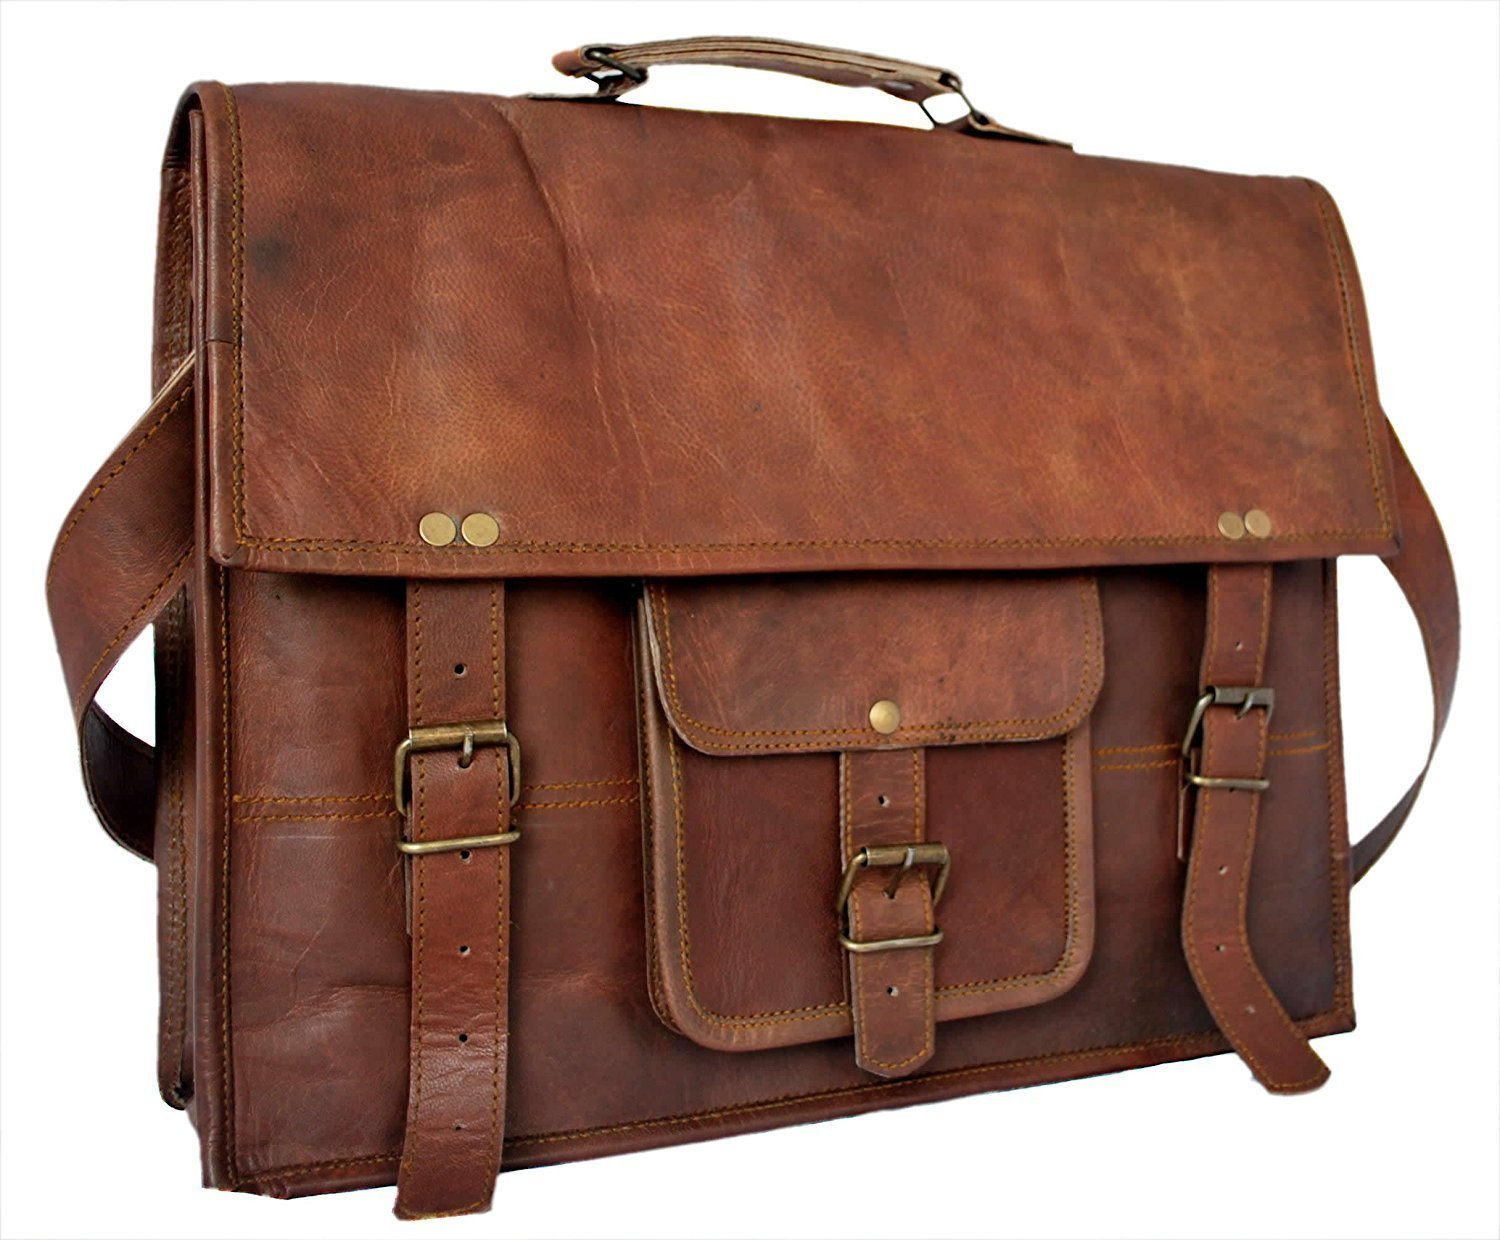 c7043bc90f8b TUZECH Leather Bag Vintage Cross Body Messenger Courier Satchel Bag Gift Men  Women ~ Business Work Briefcase Carry Laptop Computer Book Fits Laptop Up  to 11 ...